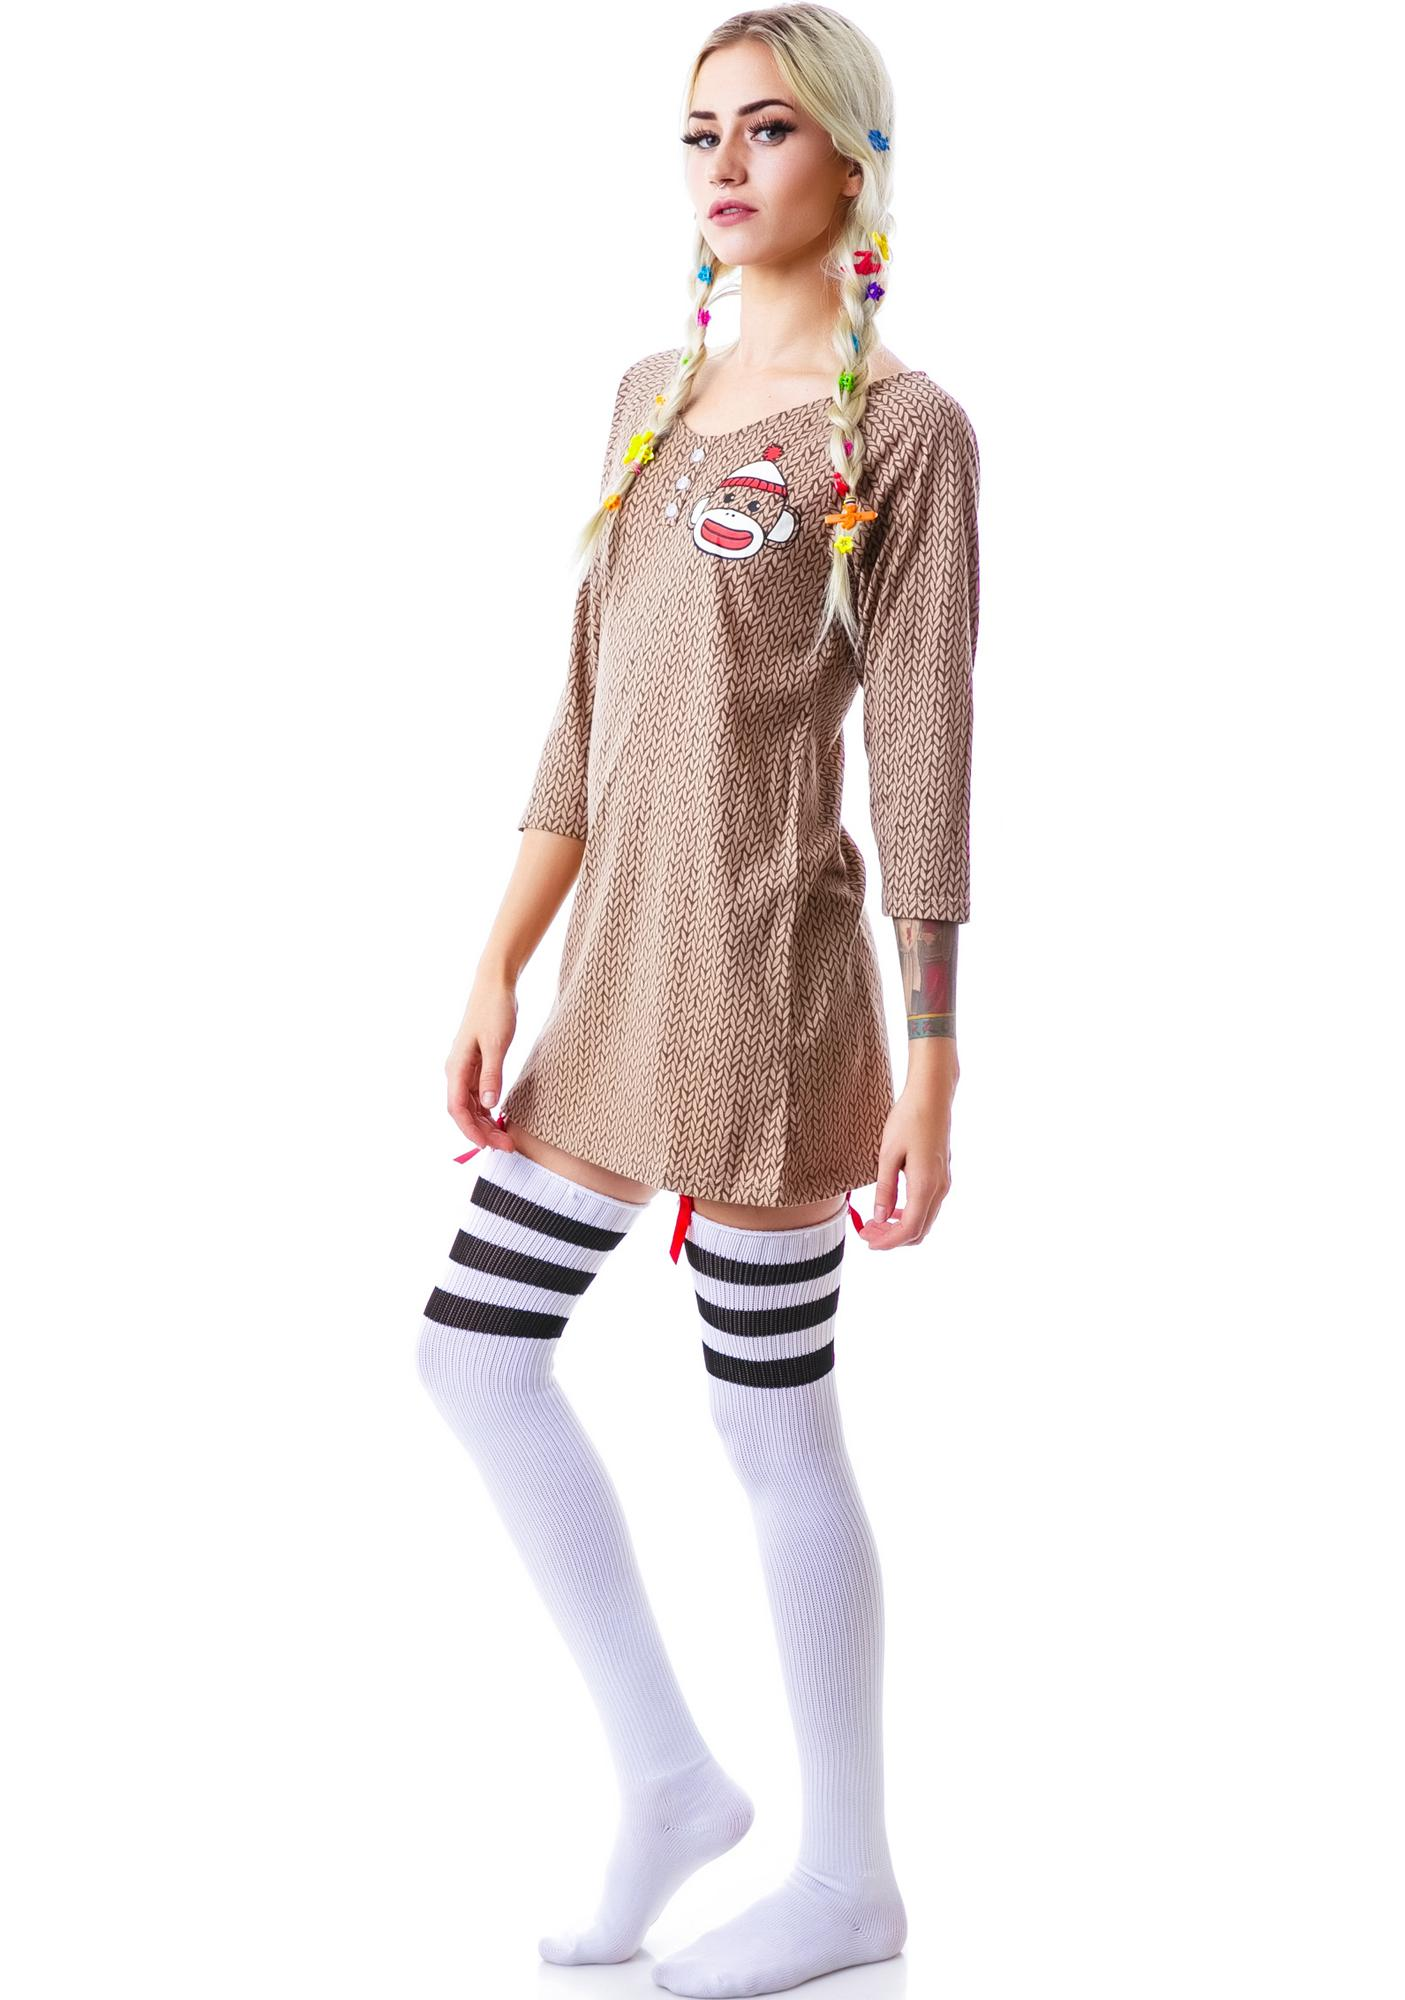 Undergirl Sock Monkey Hooded Dorm Shirt